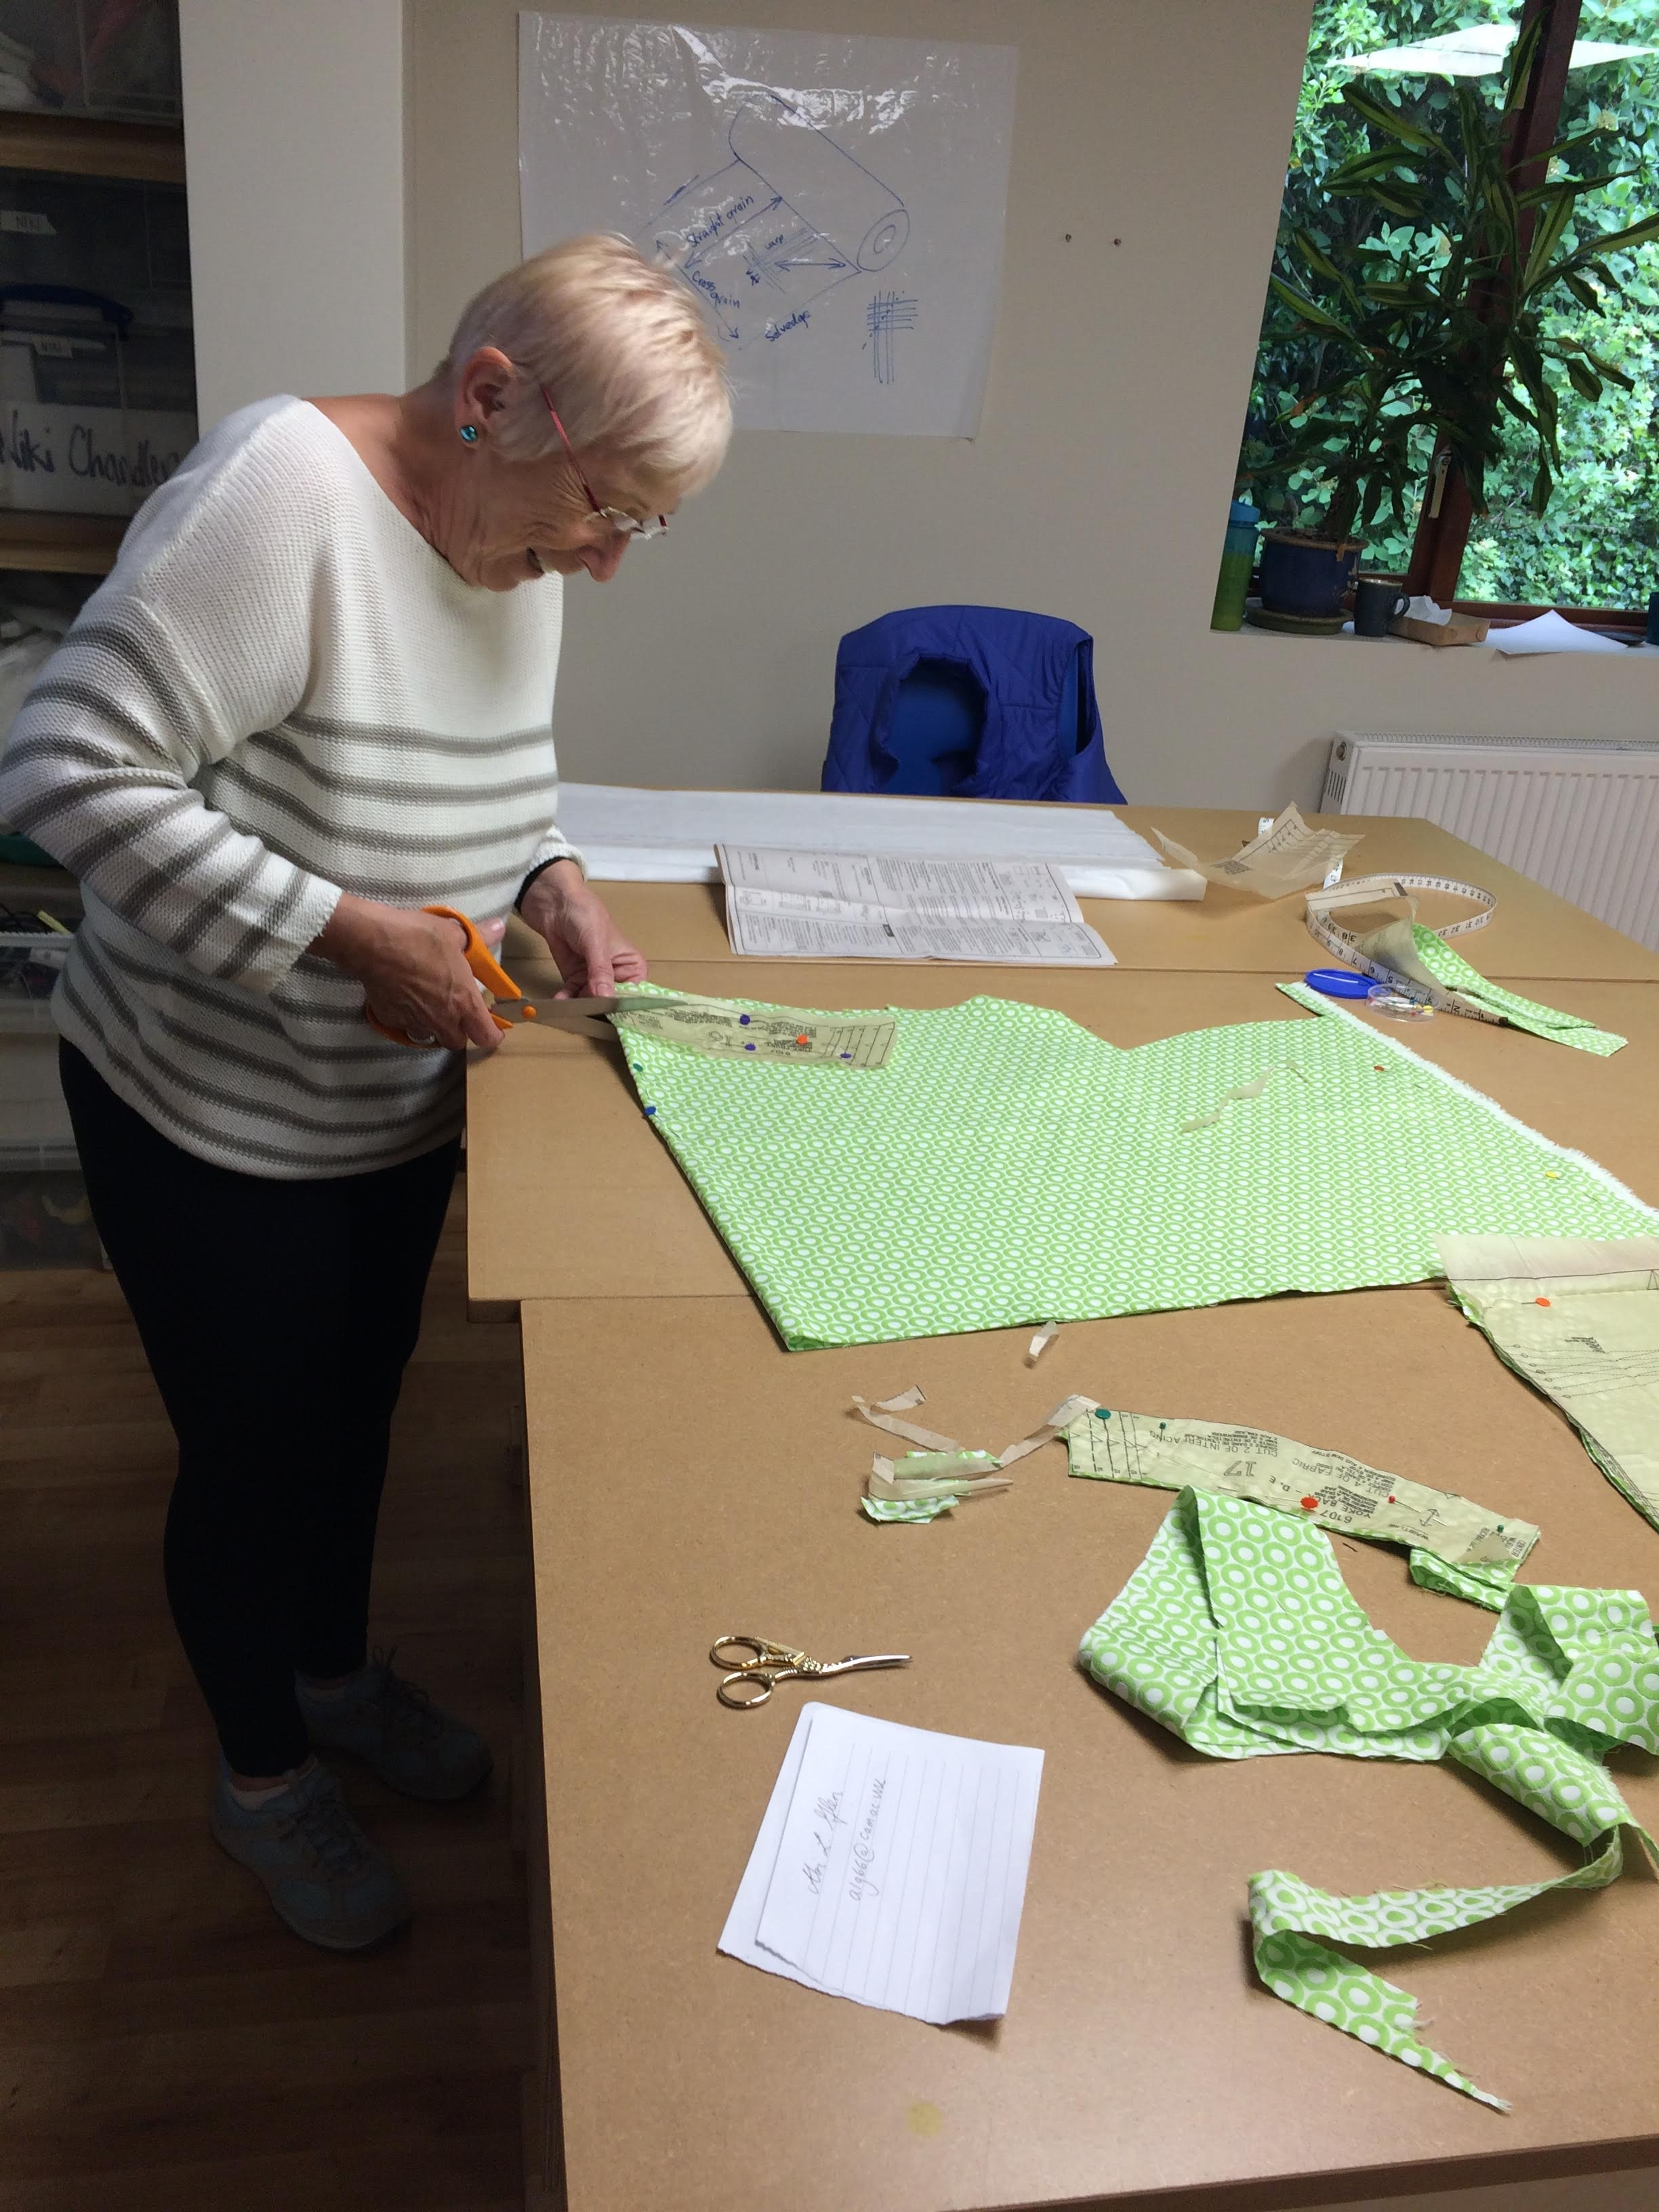 Pip cutting pieces sewing course Dress Making with Gill Collinson at Cambridge Art Makers